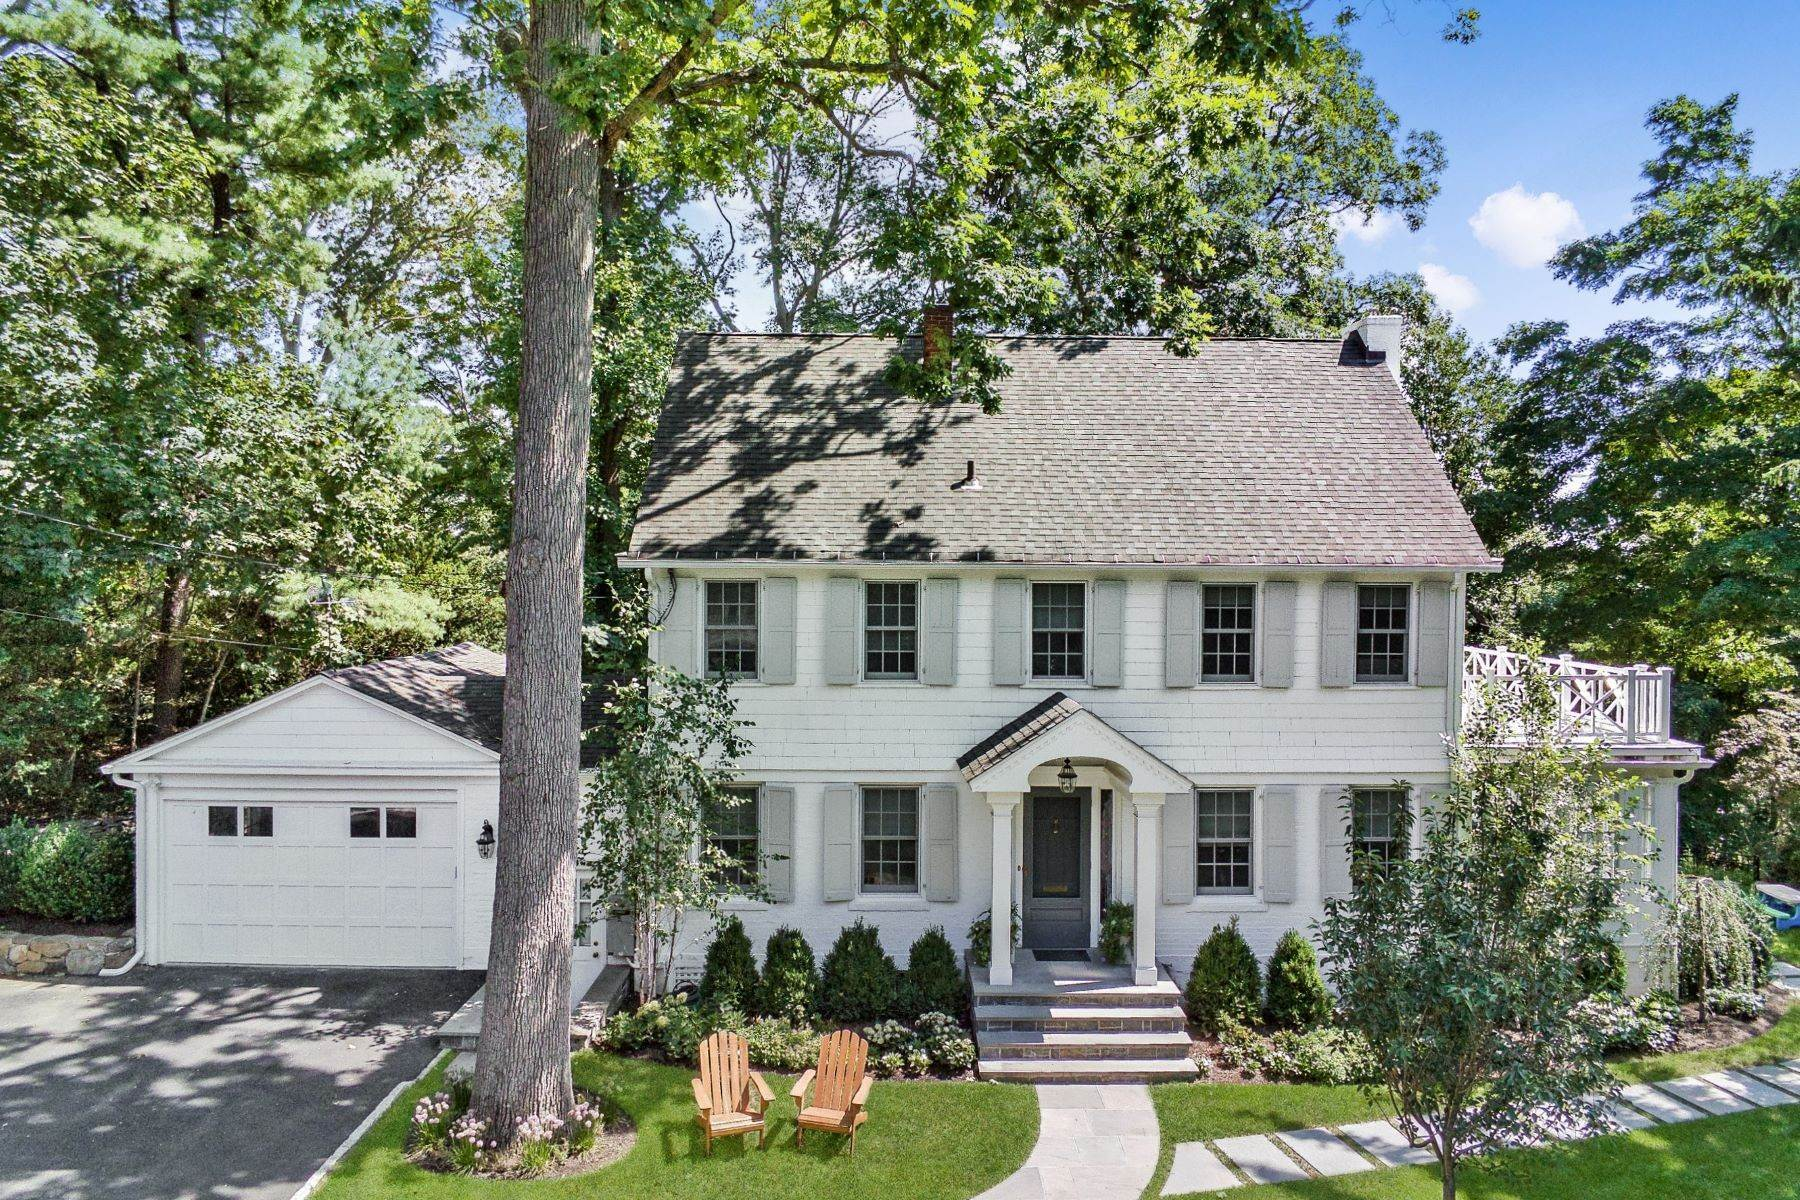 Single Family Homes for Sale at Beautifully Renovated Home to the Highest Standards 16 Wyndham Road Scarsdale, New York 10583 United States